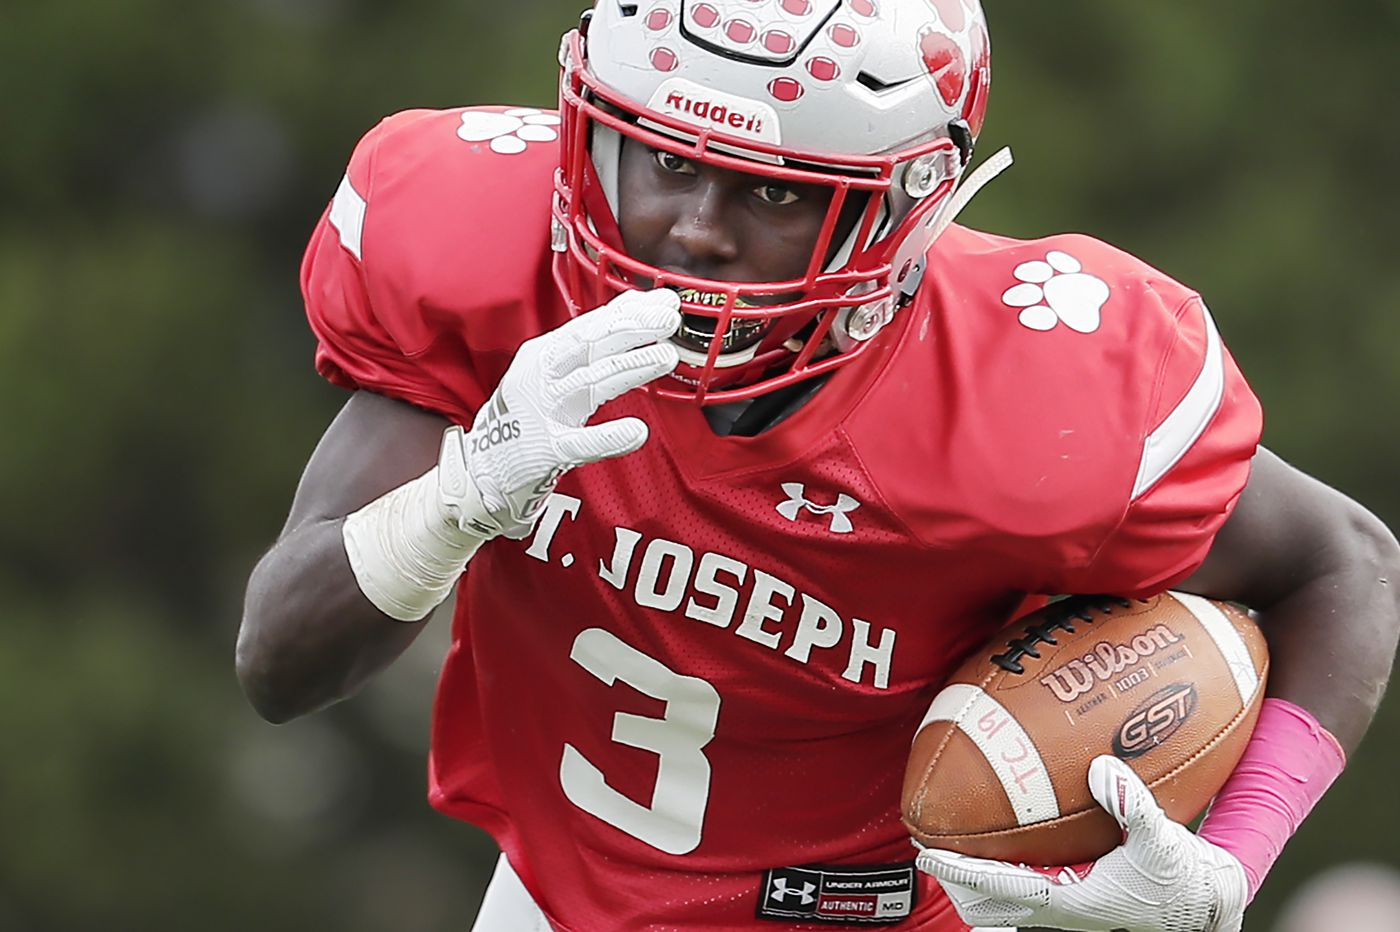 Saturday's South Jersey Roundup: Kavon Lewis collects three touchdowns to lead Penns Grove over Paulsboro for South Group 1 title